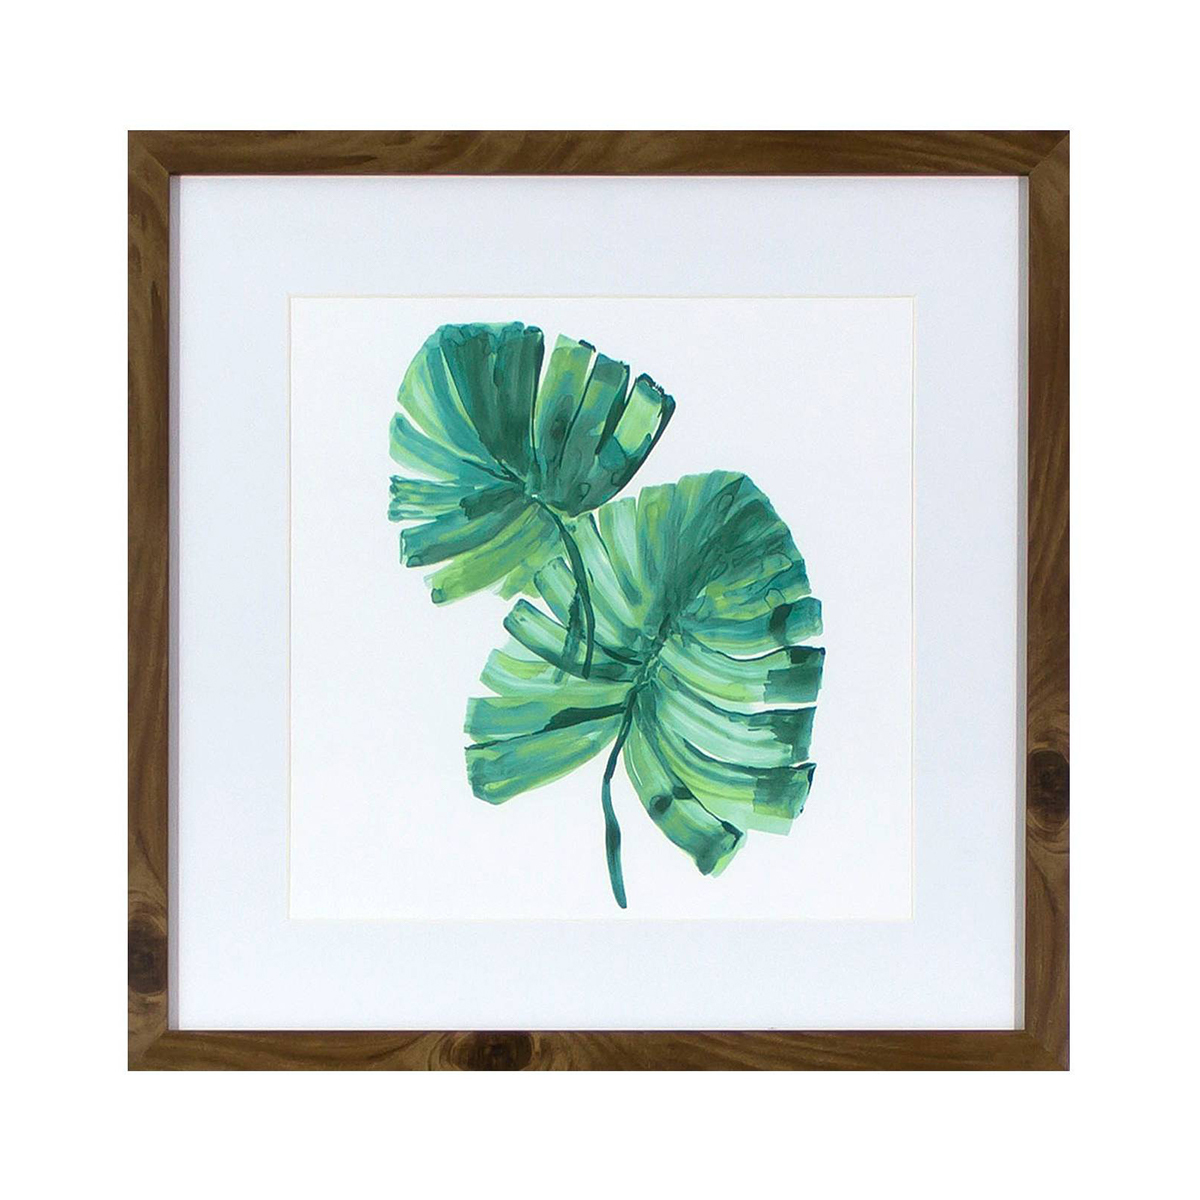 Chic wall art featuring lush green leaves for a simple, clean design. photo